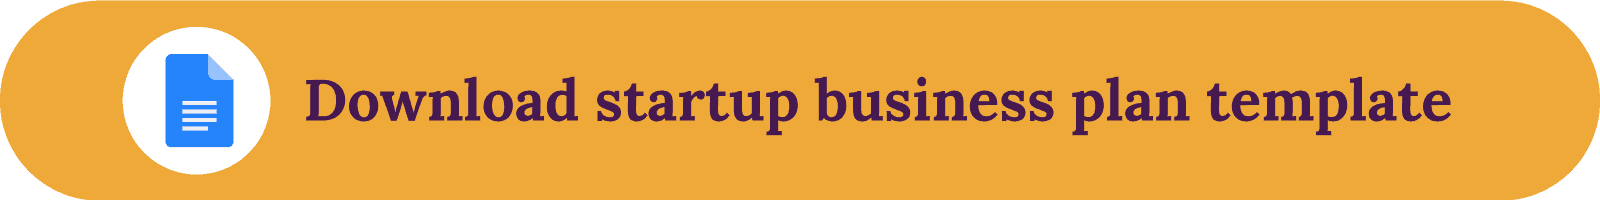 Download startup business plan template button